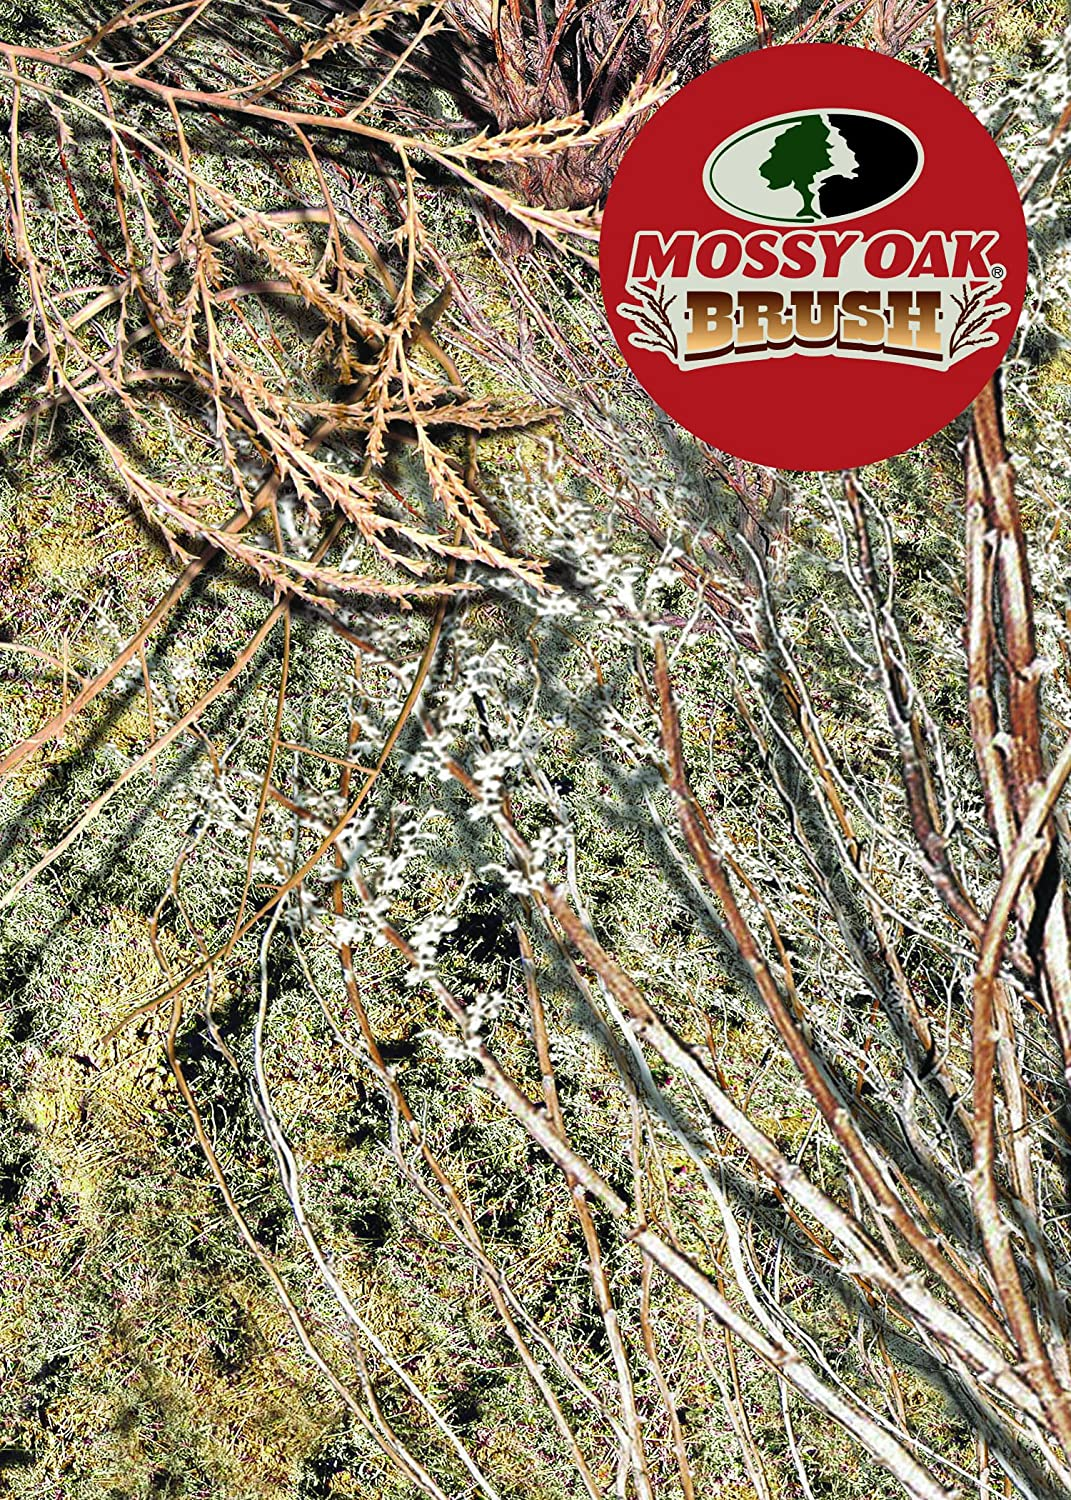 Mossy Oak Graphics (14003-BR) 8-Inch x 29.5-Inch Brush Gear Skin